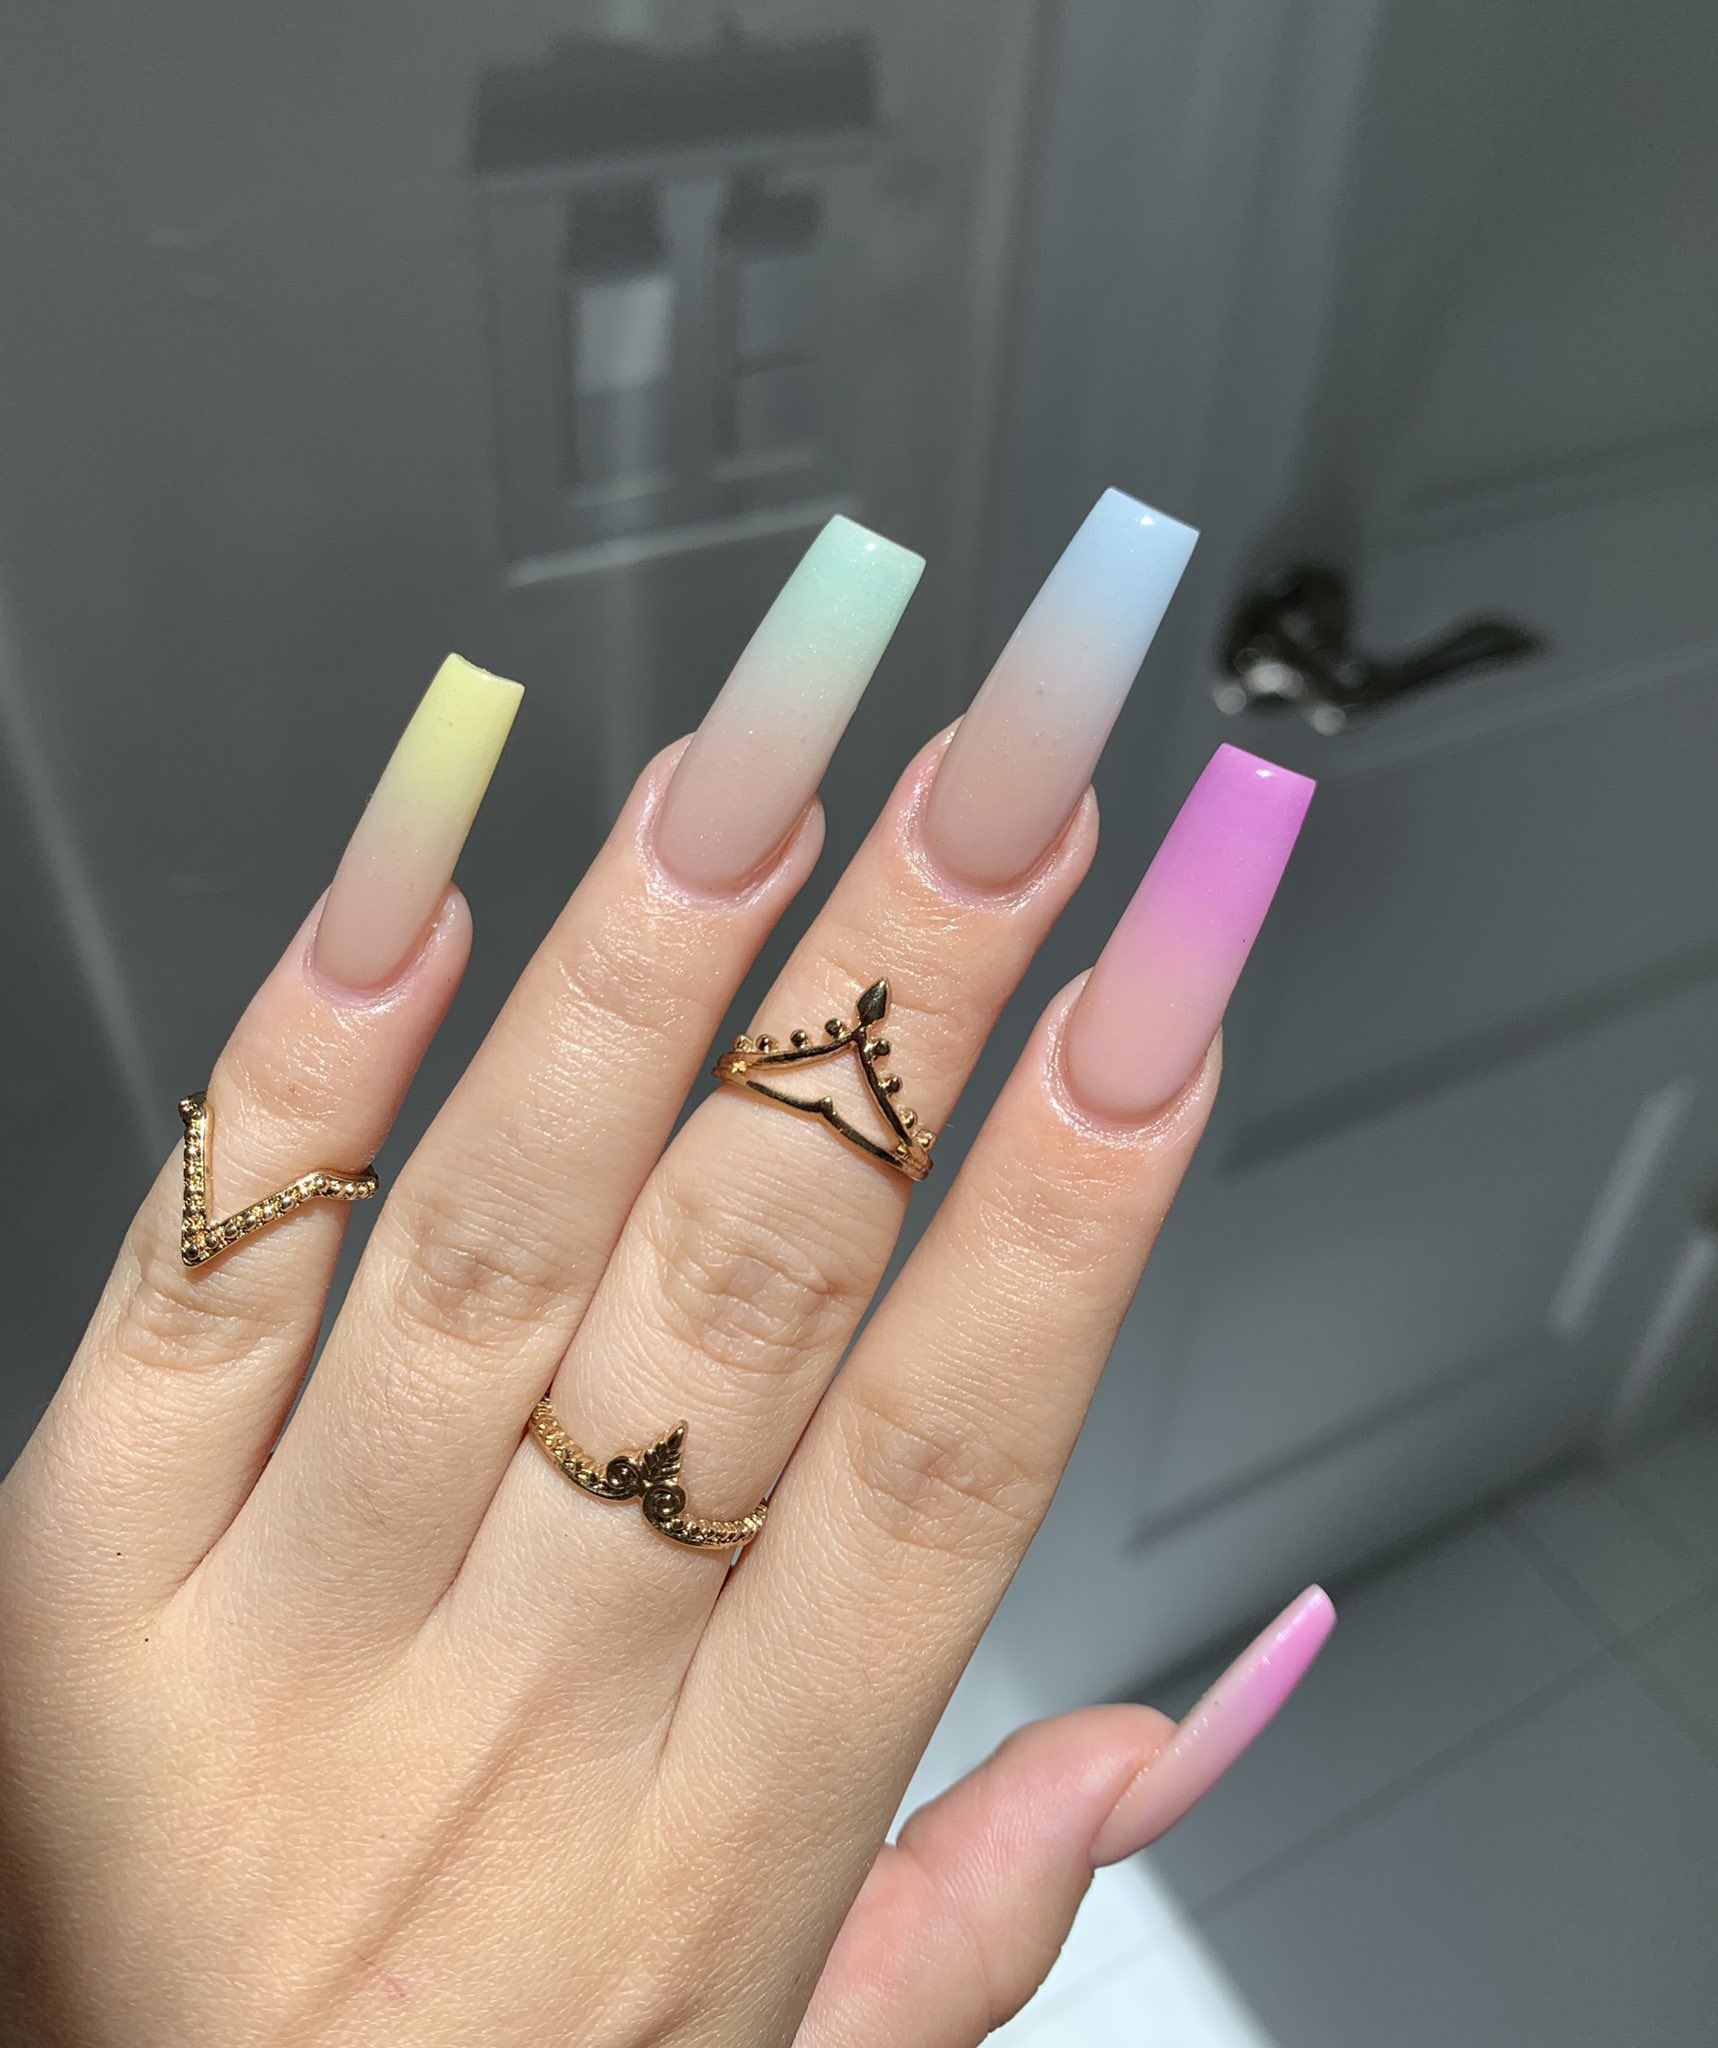 Follow For More Kaycedes Bad Nails Rainbow Nails Best Acrylic Nails